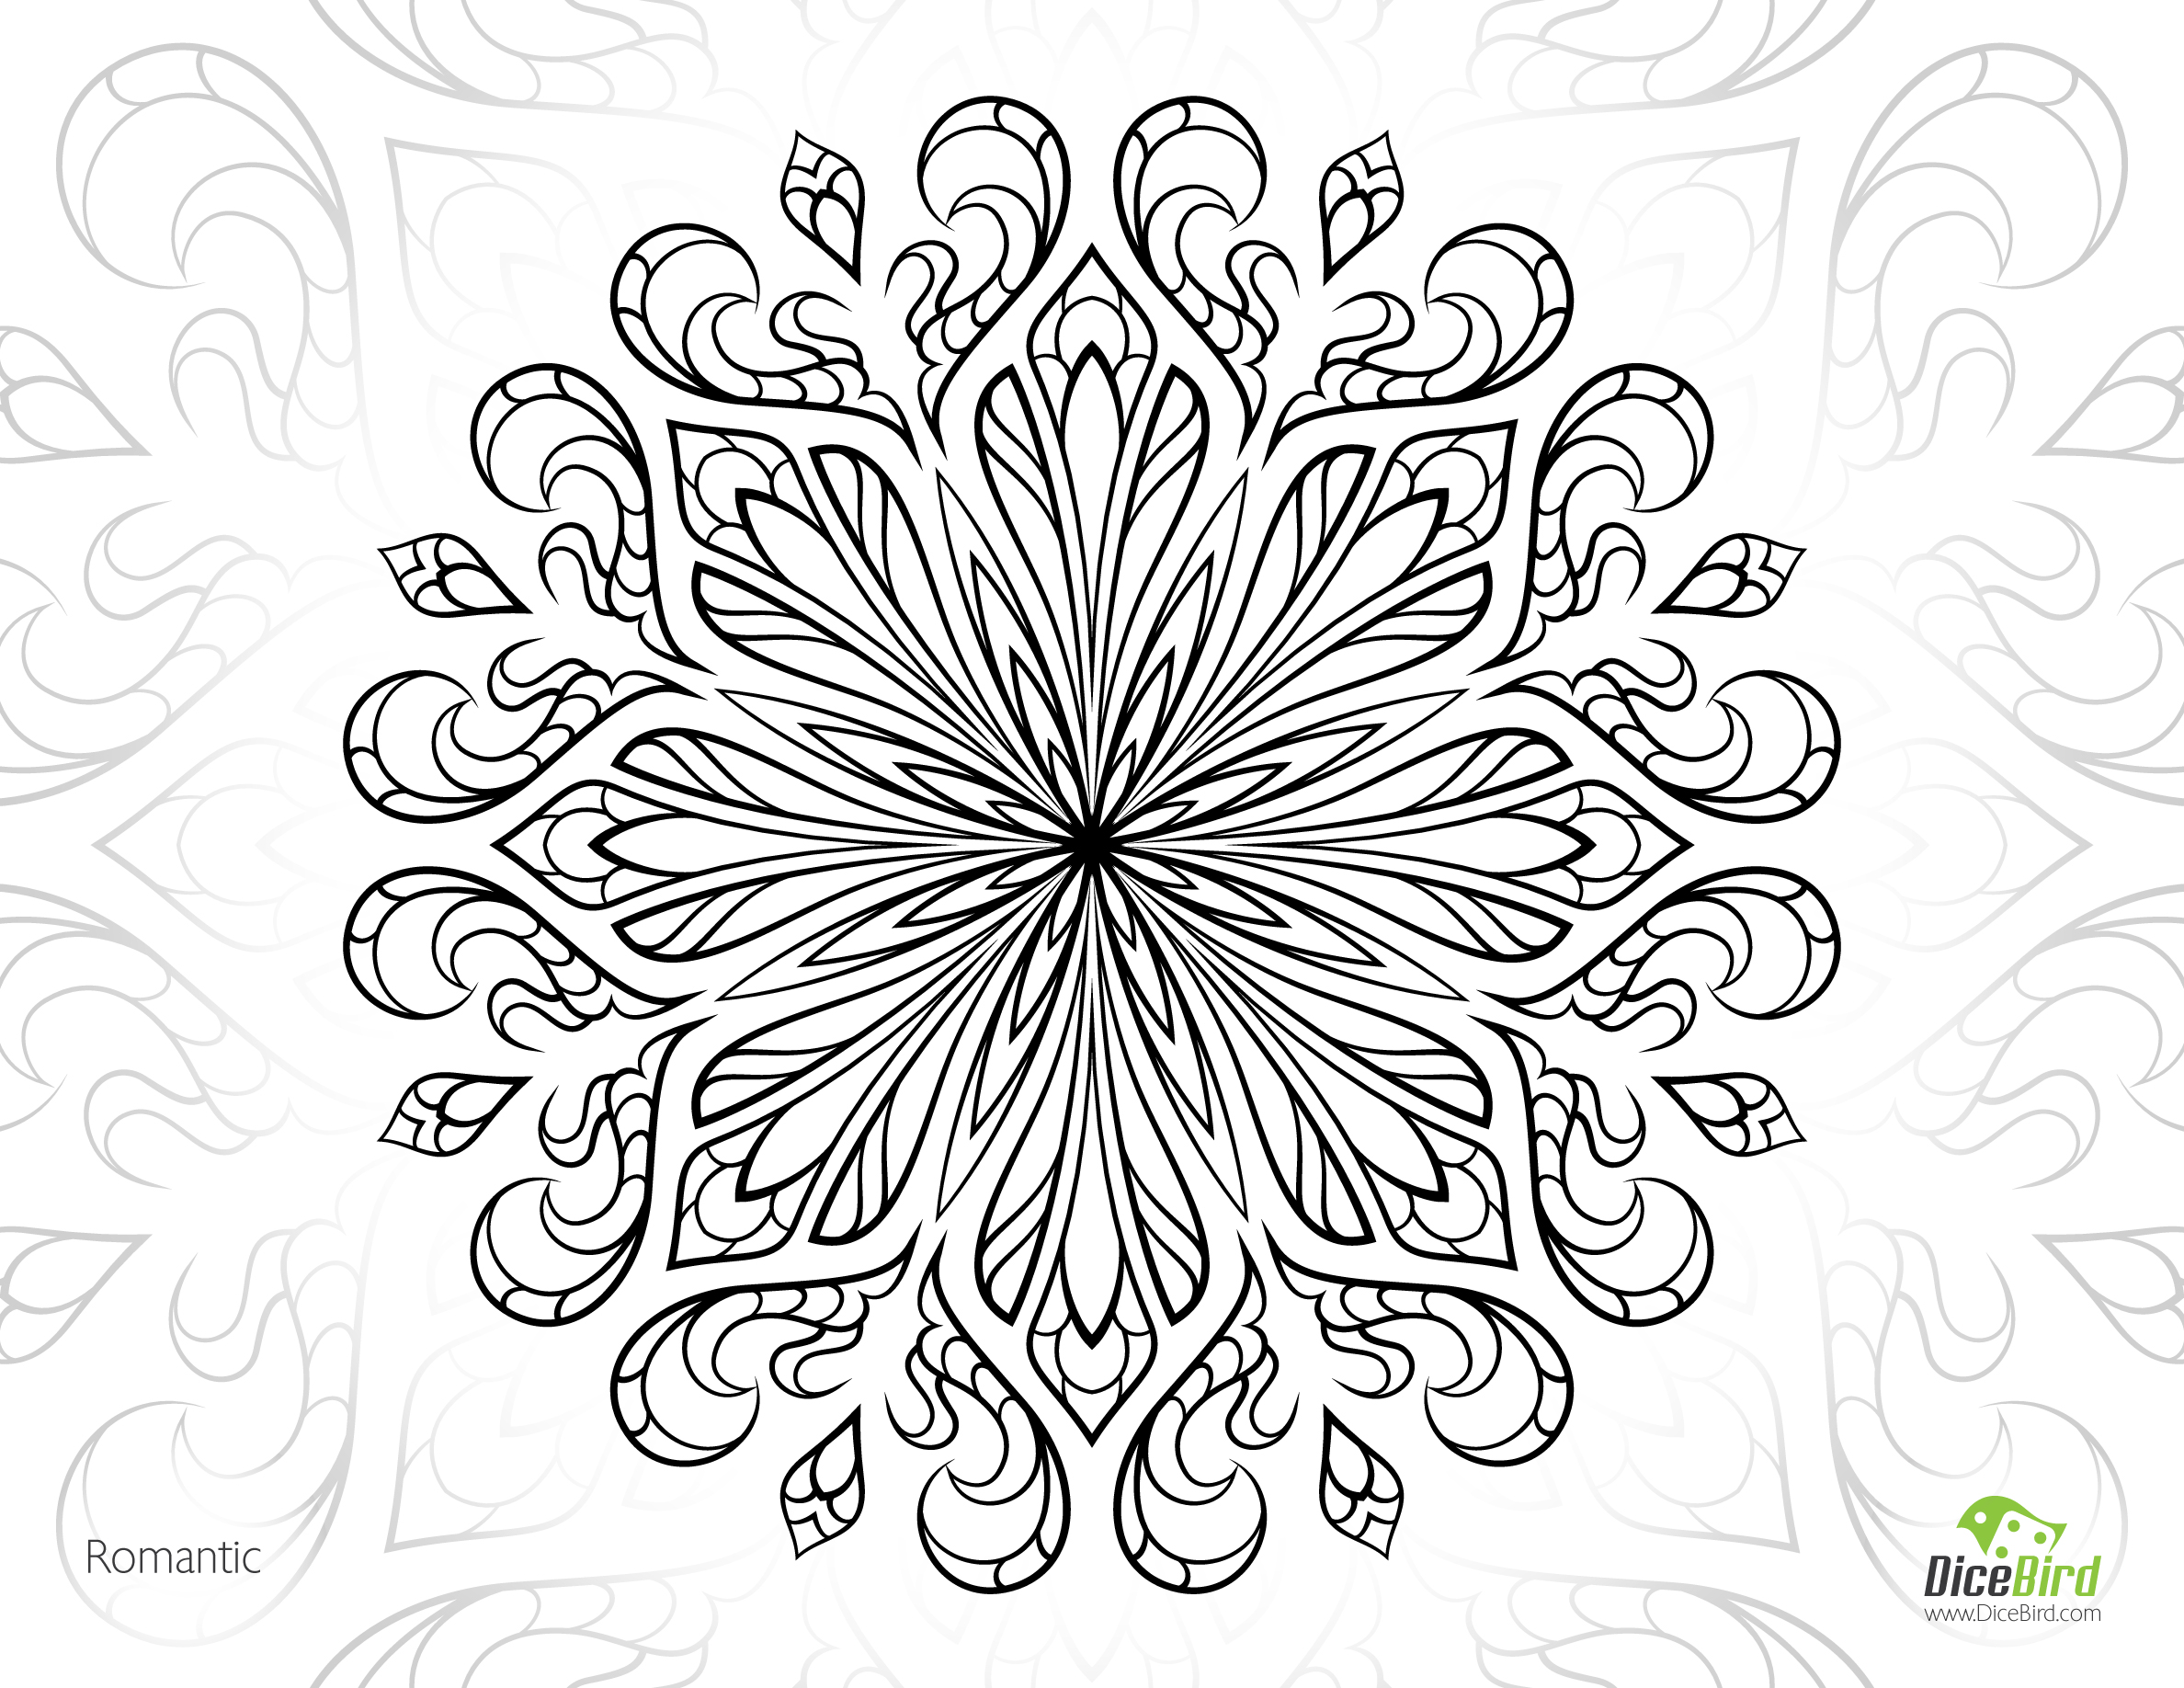 2376x1836 Best Of Free Printable Coloring Pages For Adults Advanced Romantic